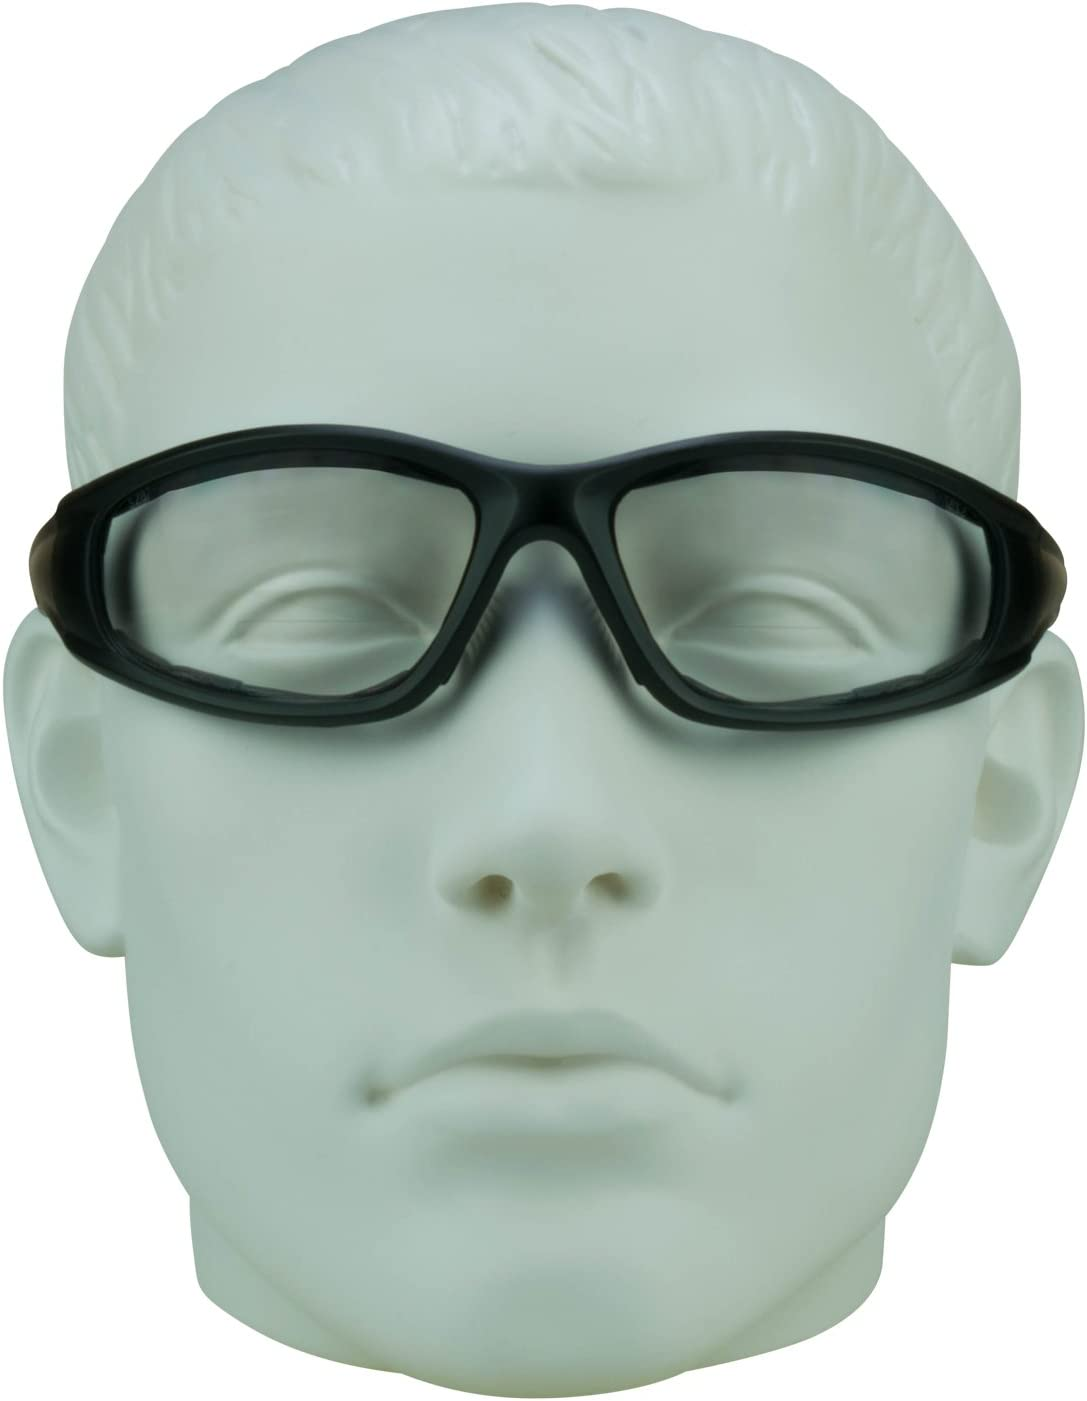 1.50 Foam Padded Z87.1 Motorcycle Riding Bifocal Safety Glasses